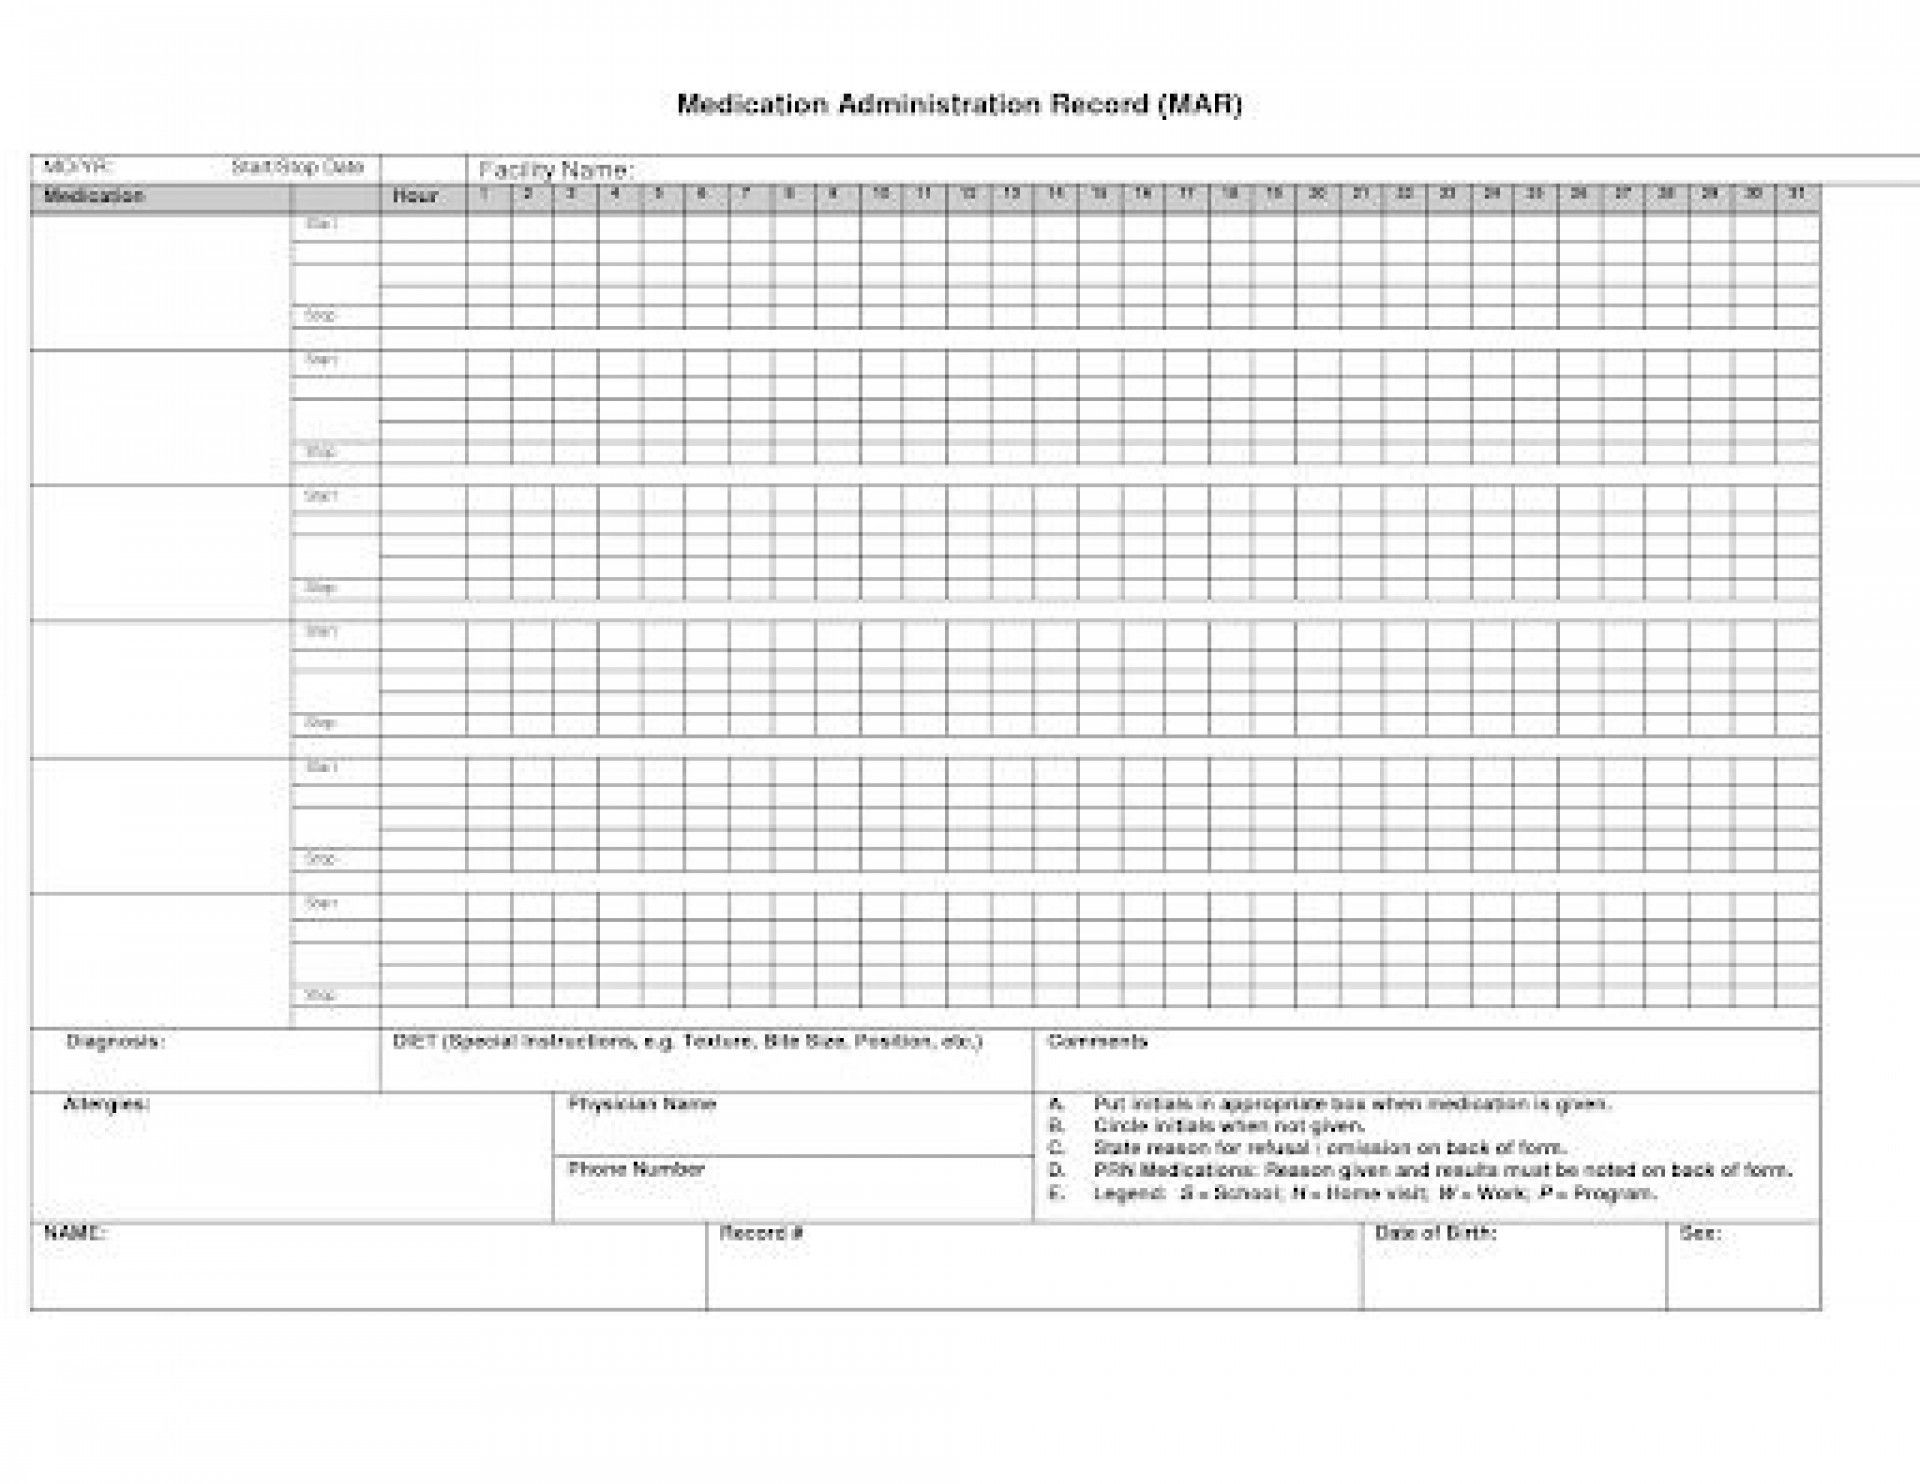 007 Simple Medication Administration Record Form Download High Def Full